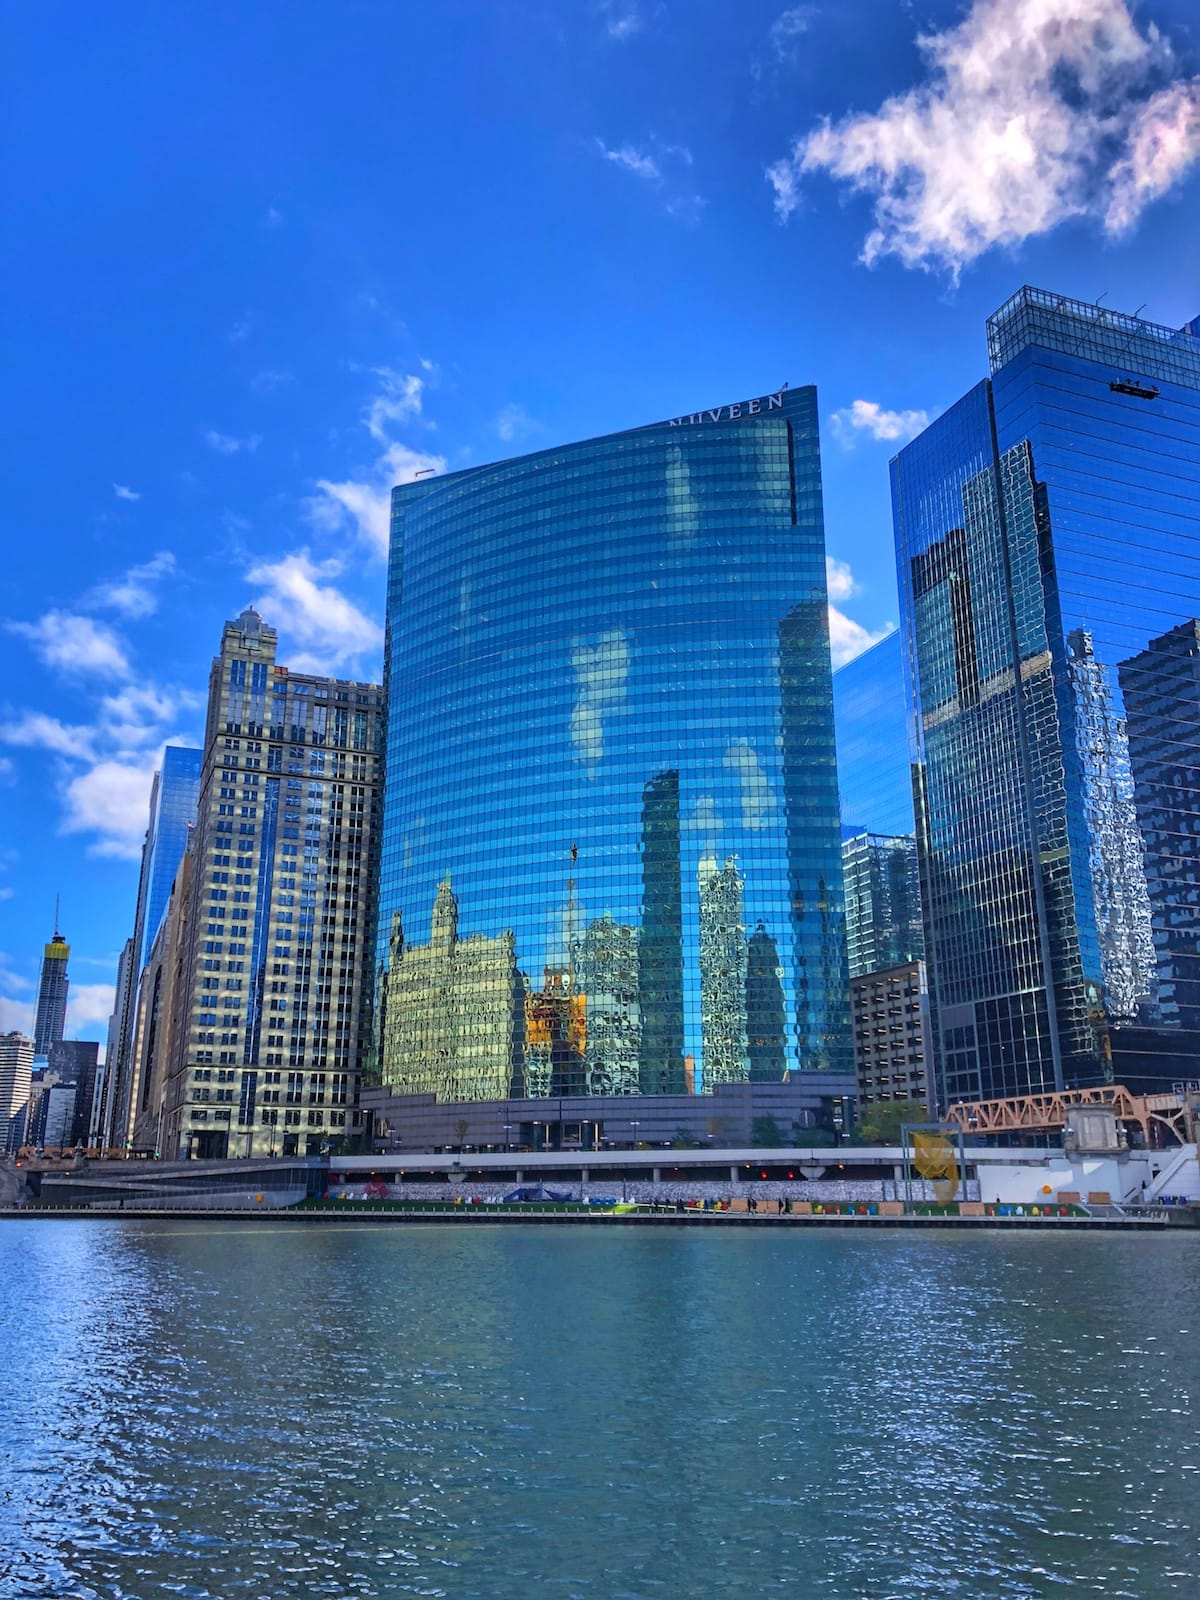 Enjoy Illinois: Exploring Chicago and the Magnificent Mile - Chicago Architecture Tour